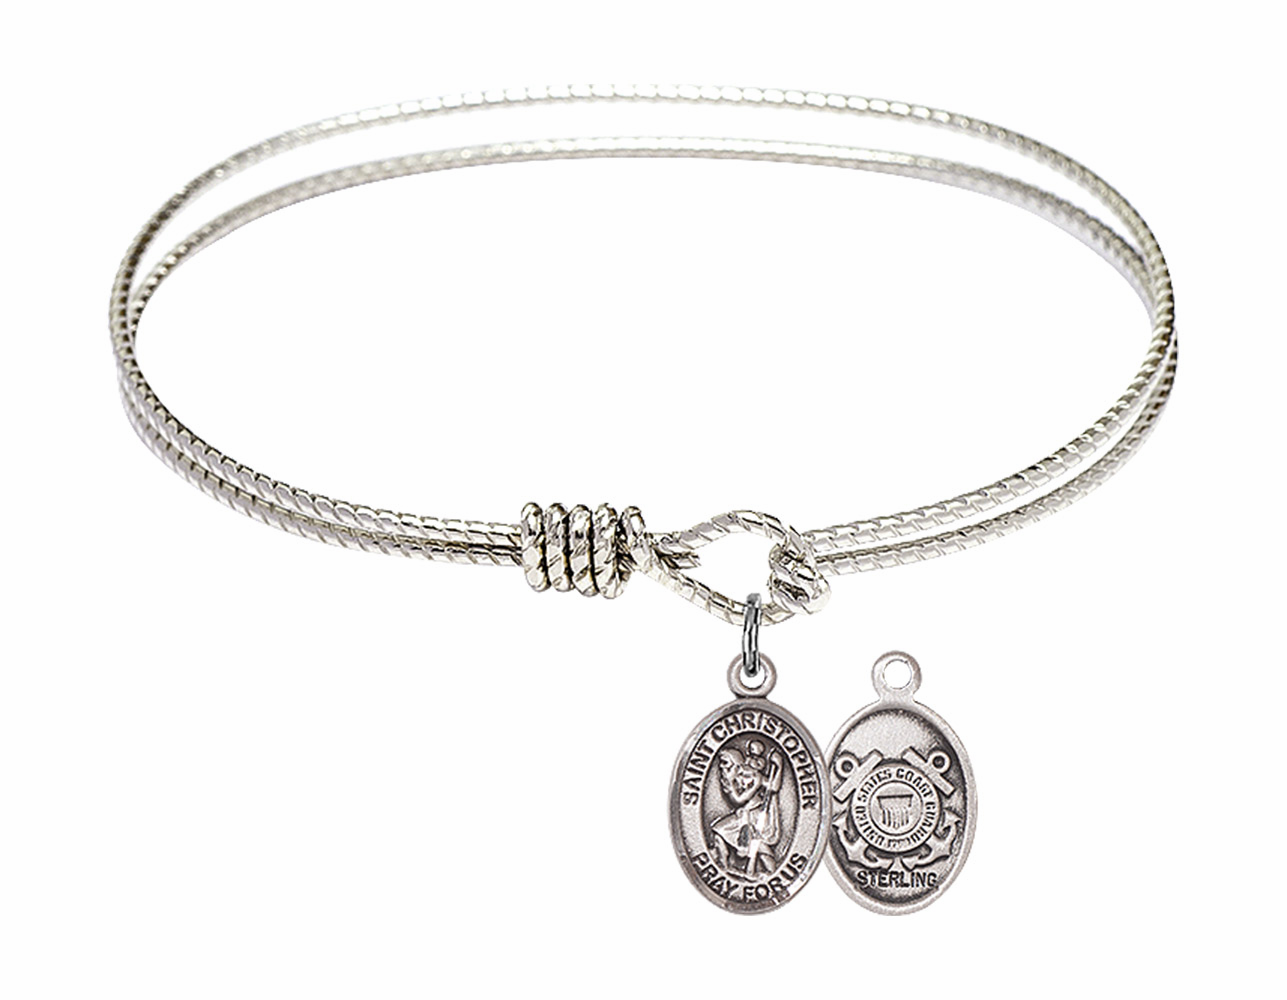 Round Loop St Christopher Coast Guard Bangle Sterling Silver Charm  Bracelet by Bliss